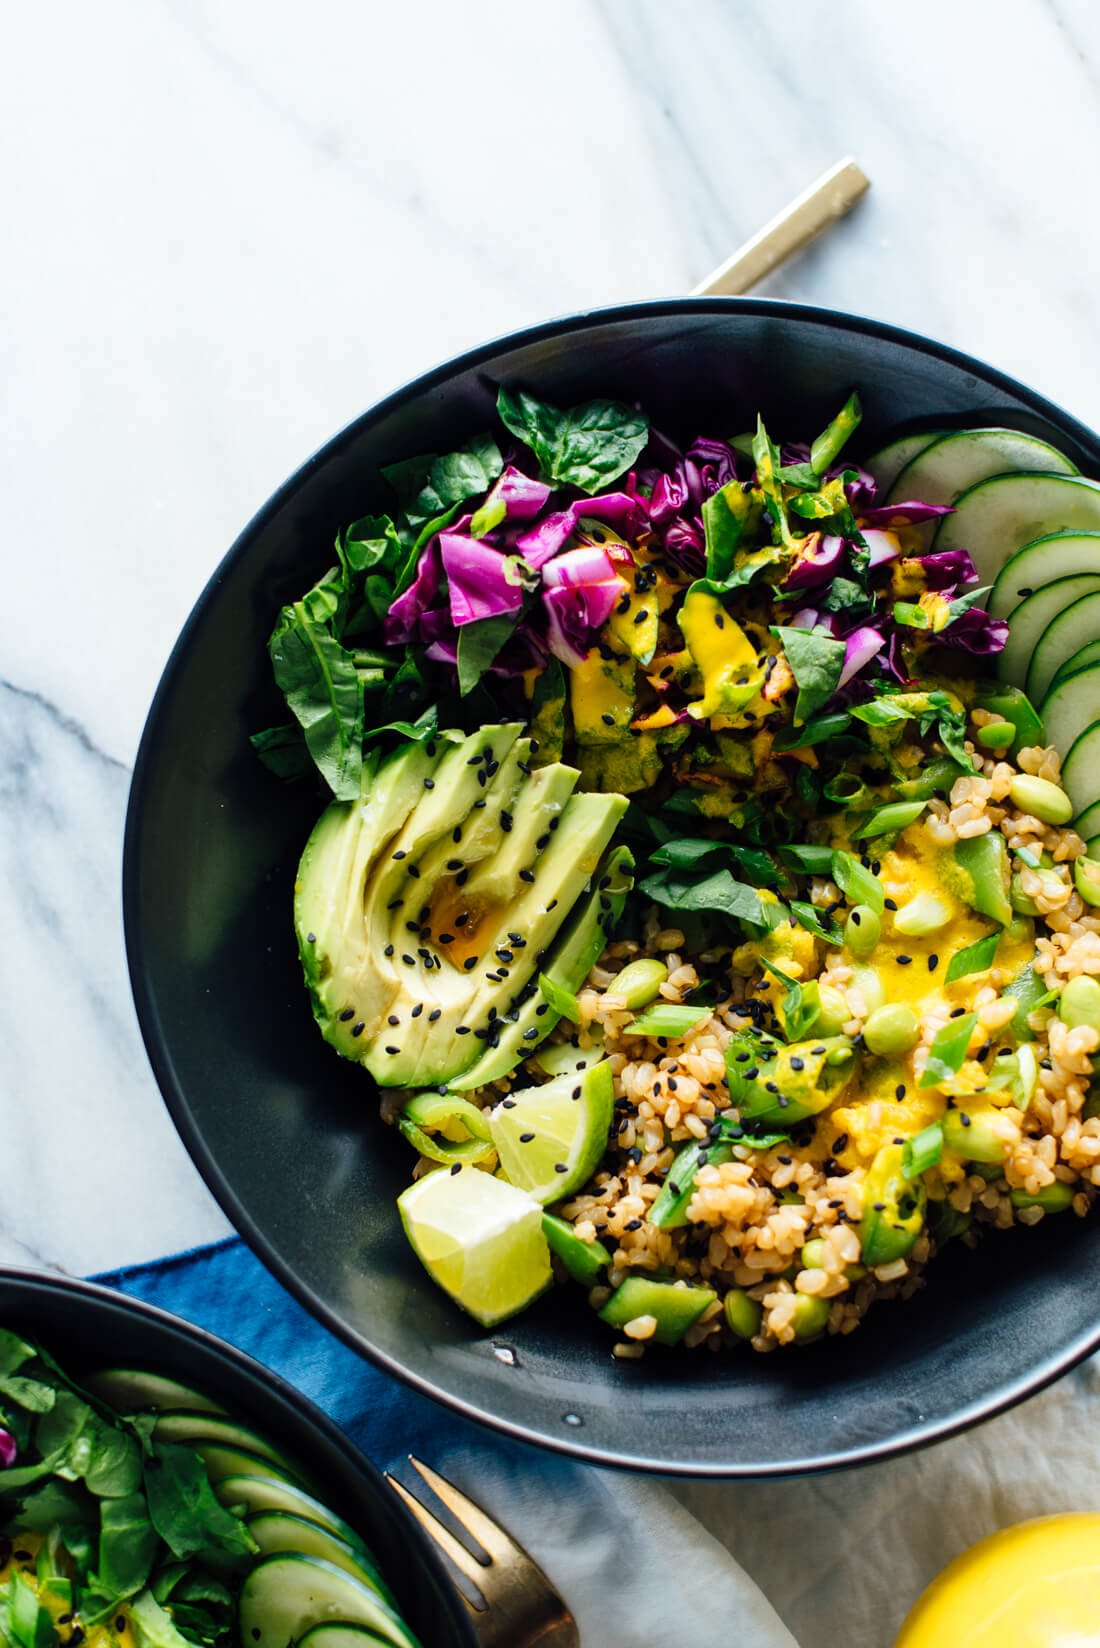 Build-Your-Own Buddha Bowl